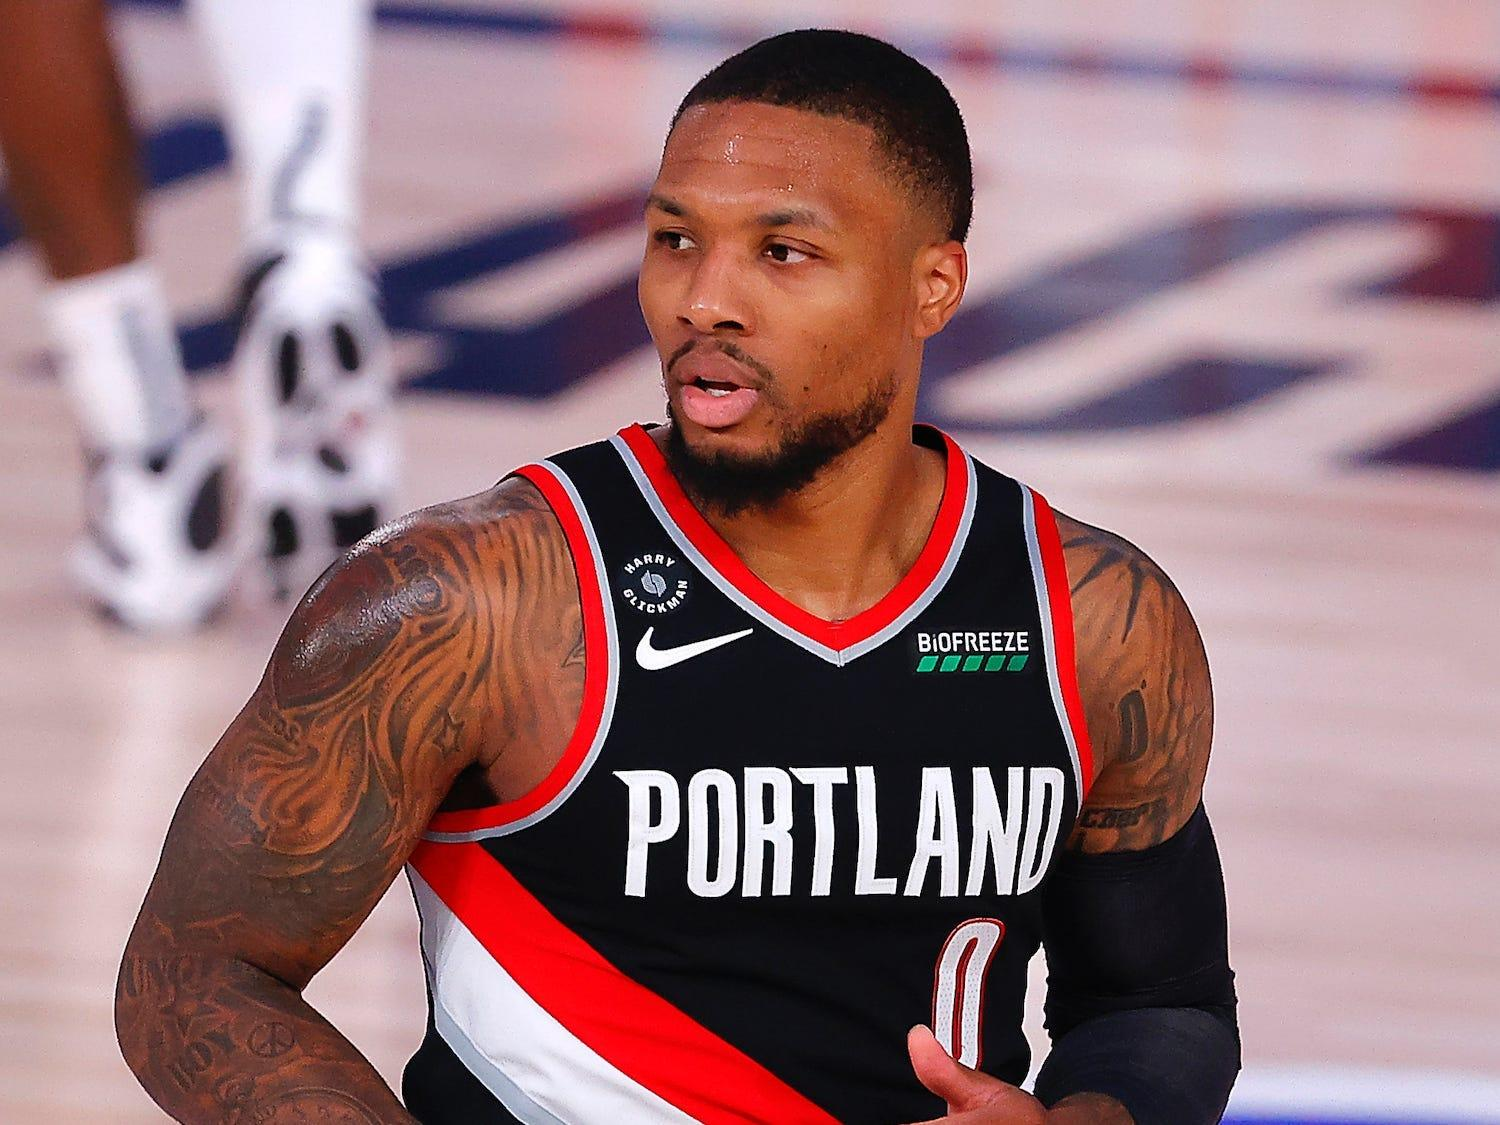 Damian Lillard willed the Blazers into the NBA play-in tournament by shooting from half-court and avoiding the 'right' play